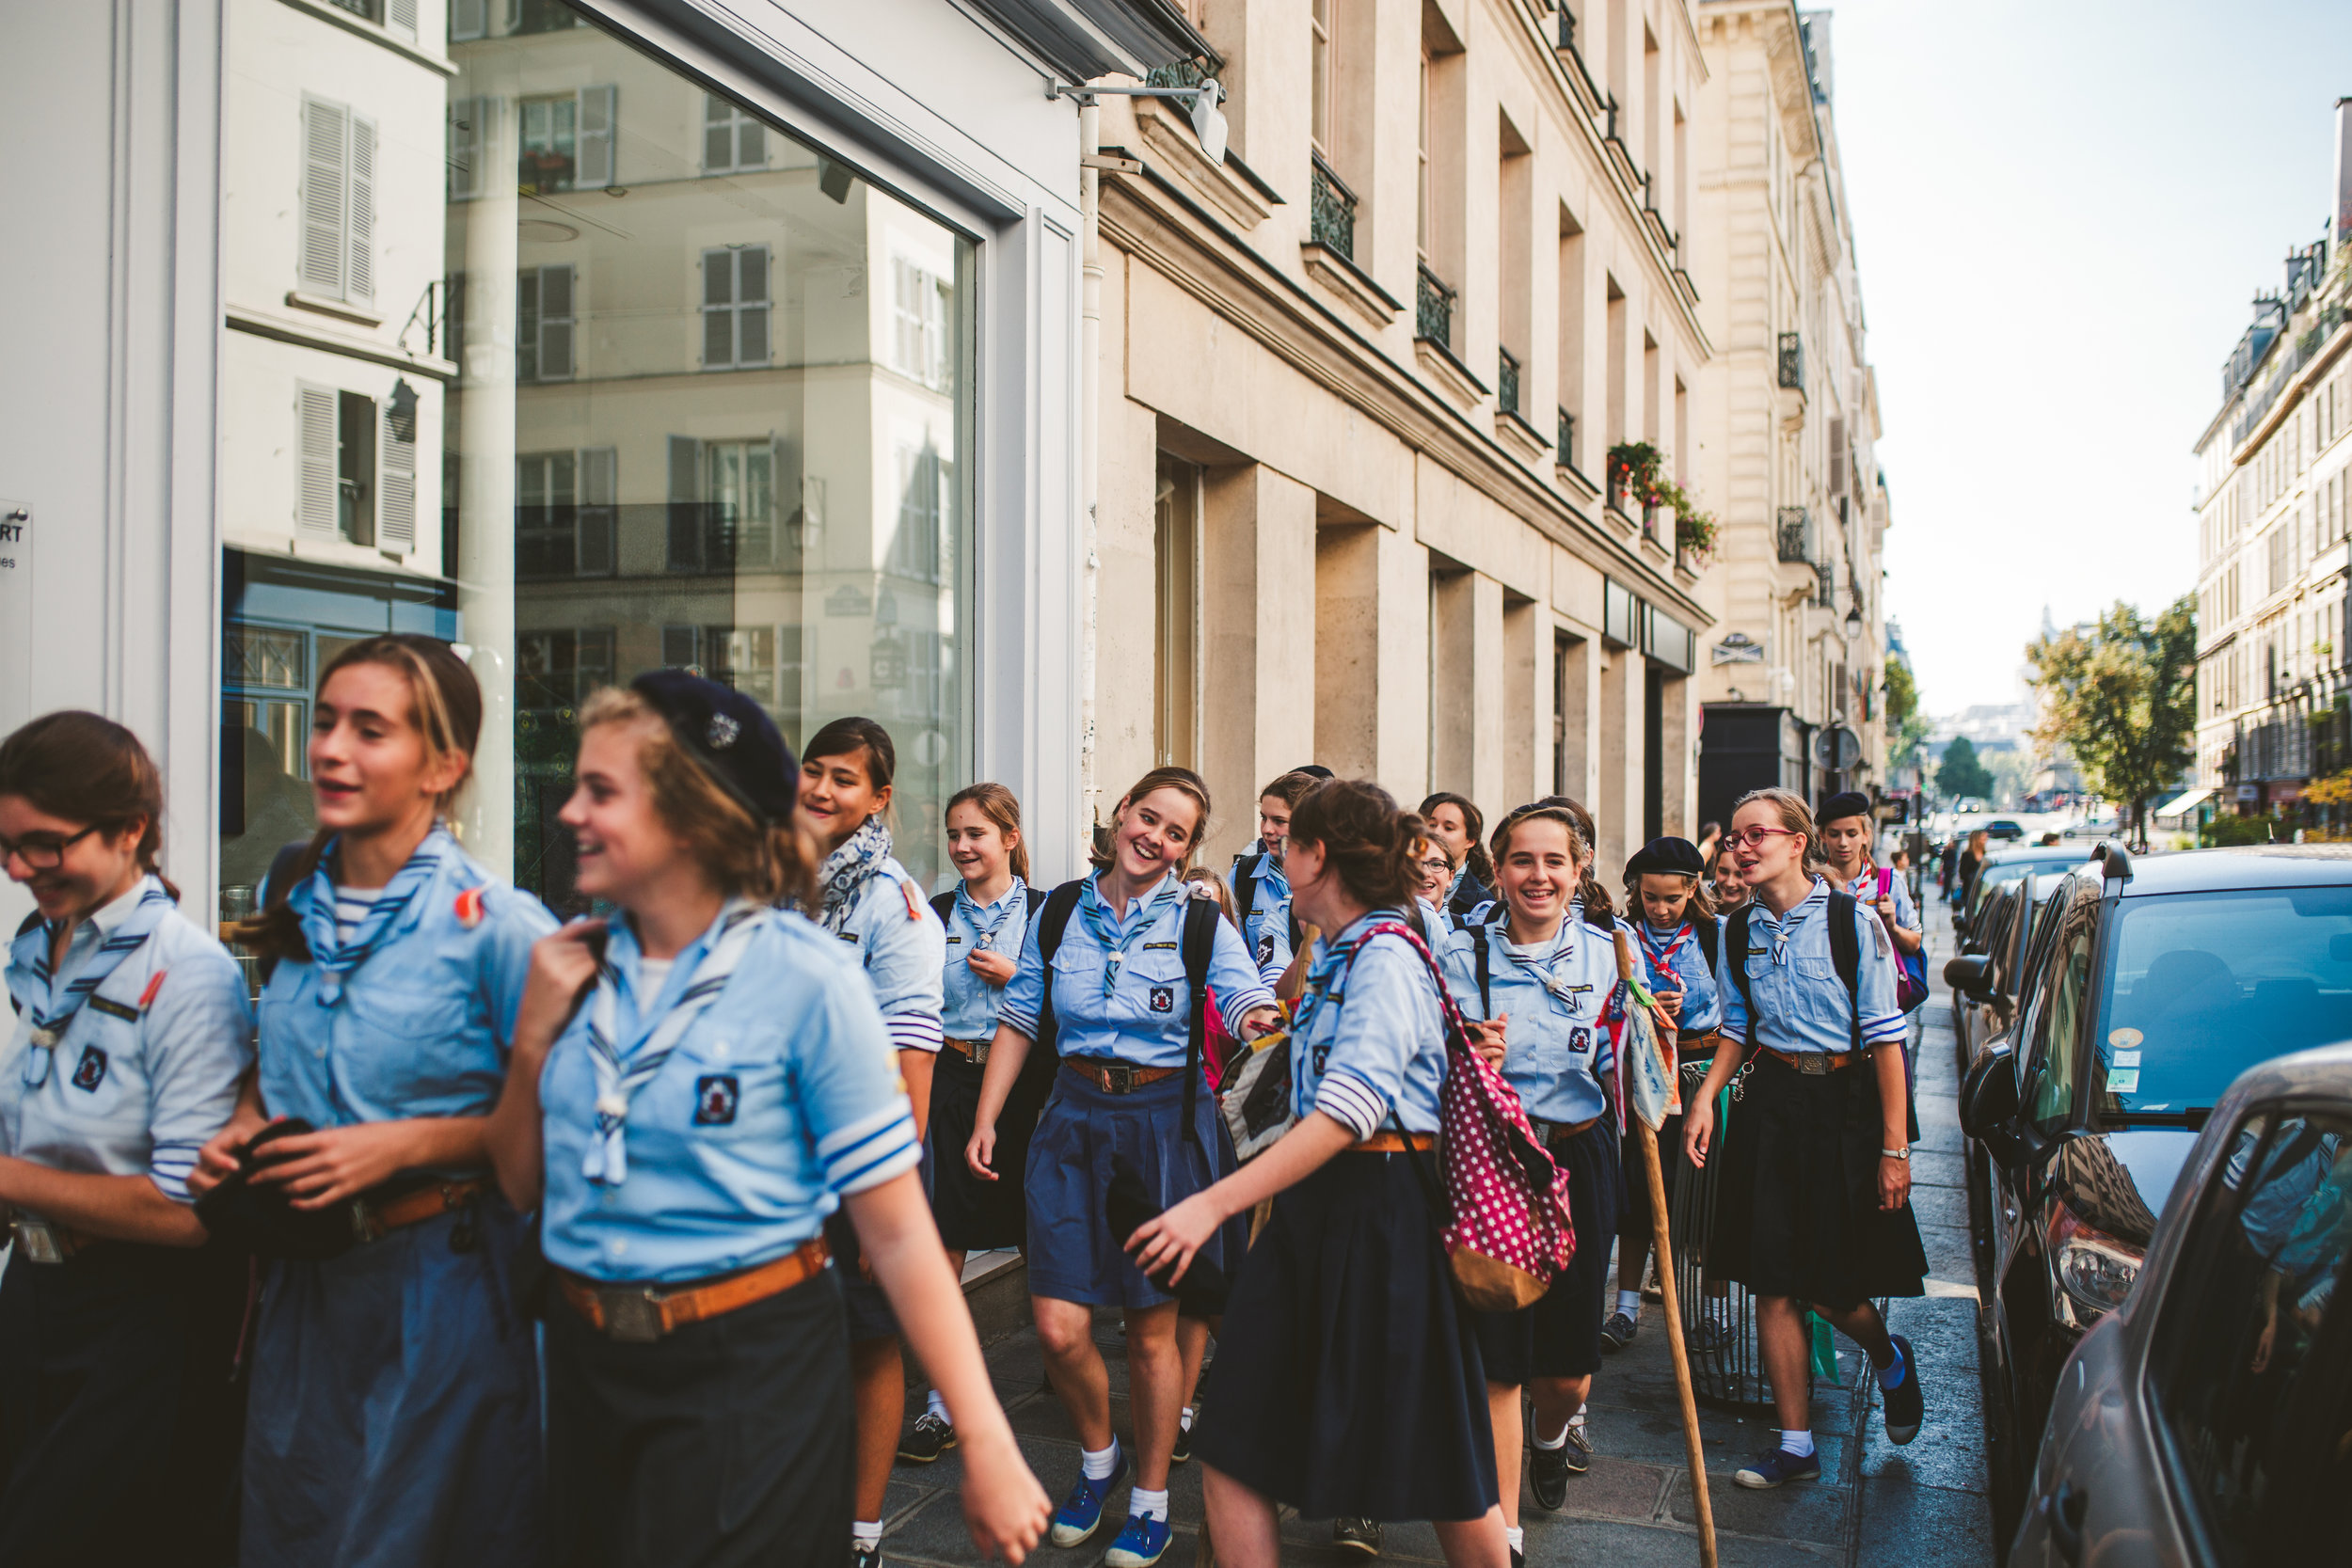 These girls were singing on their way to school, they were so loud that we heard them from way above the street. It sounded like their own battle cry. I loved it.